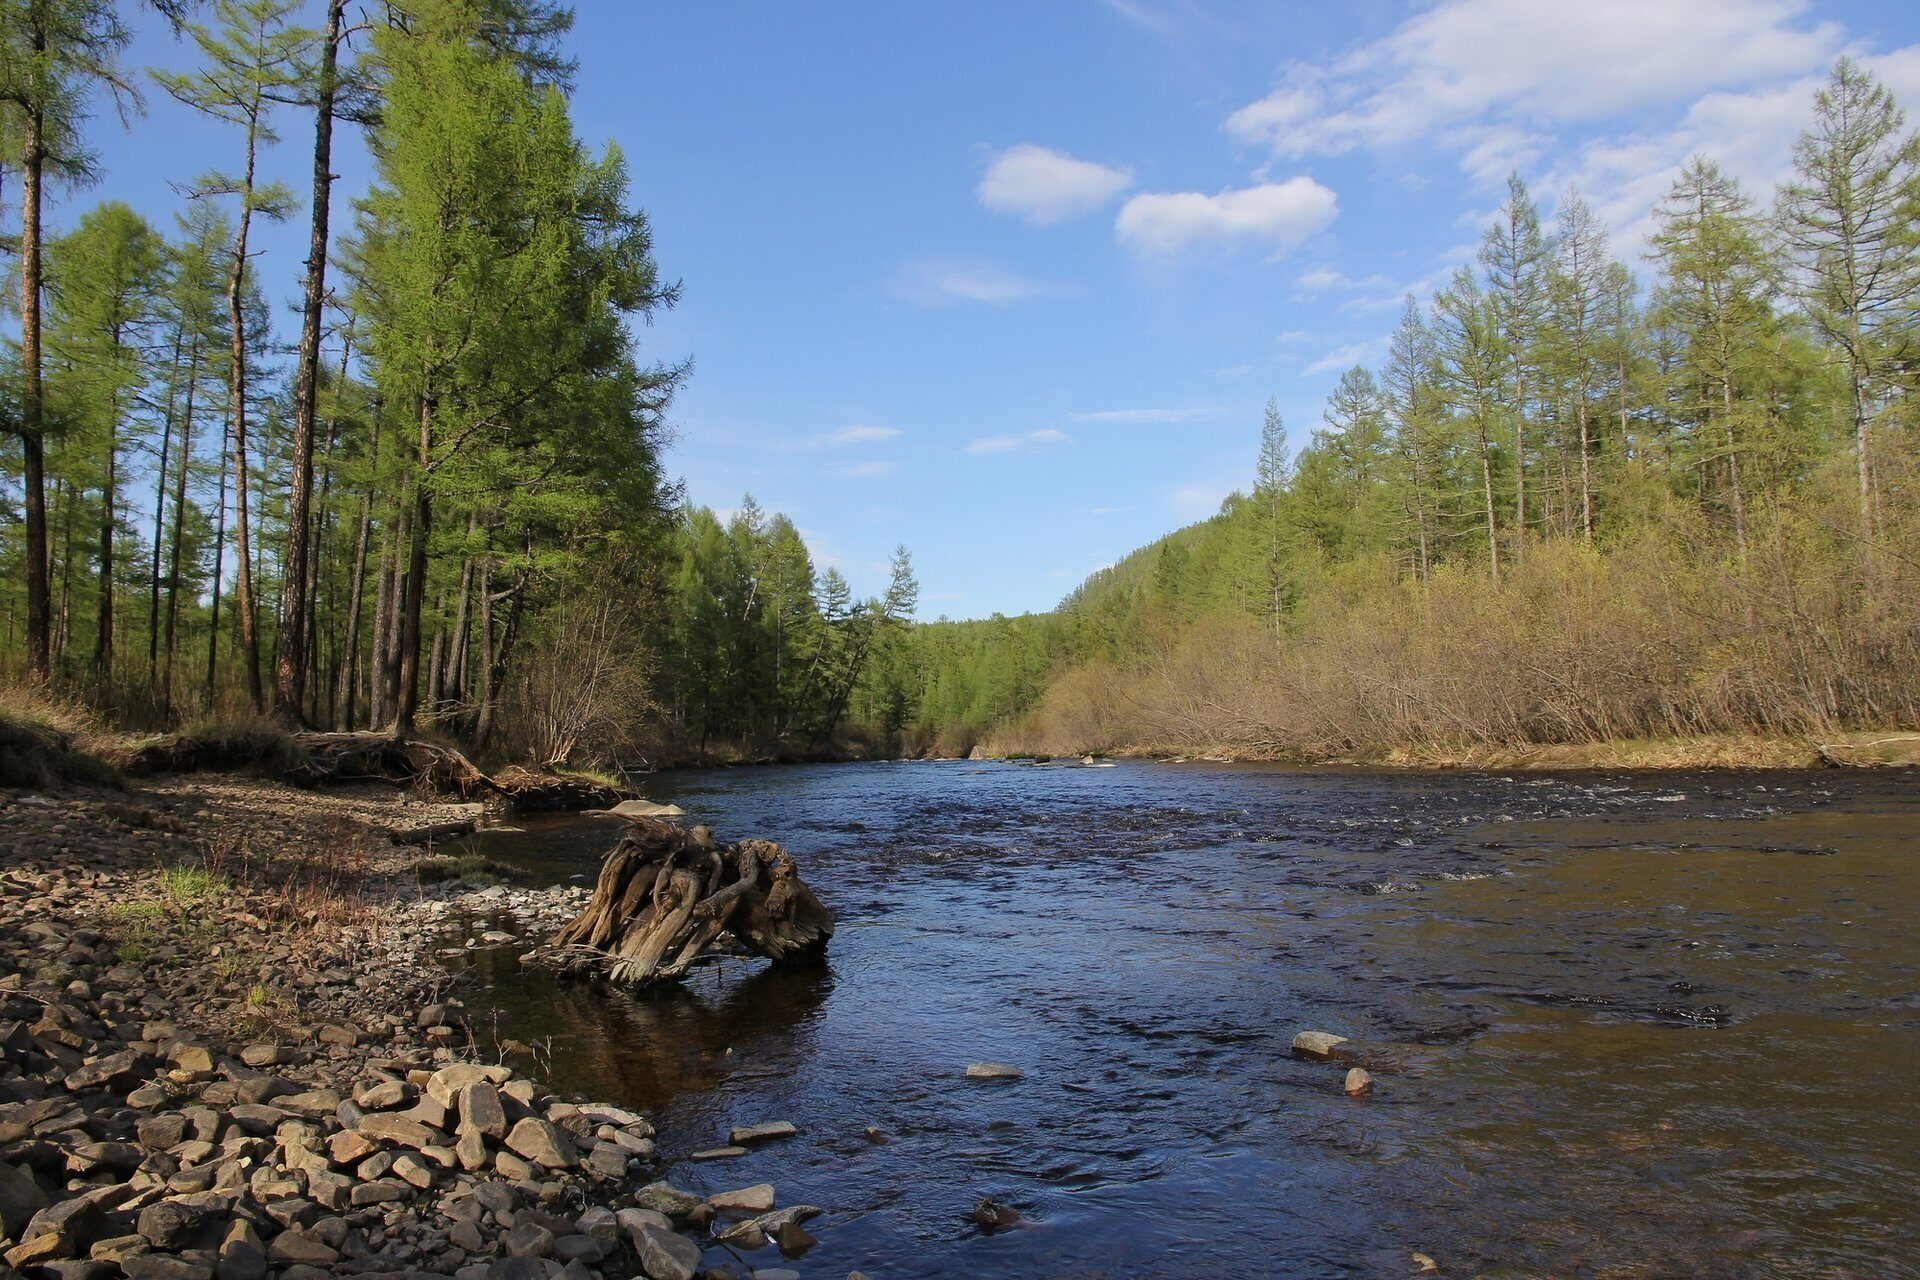 View of the river Berkakit in South Yakutia